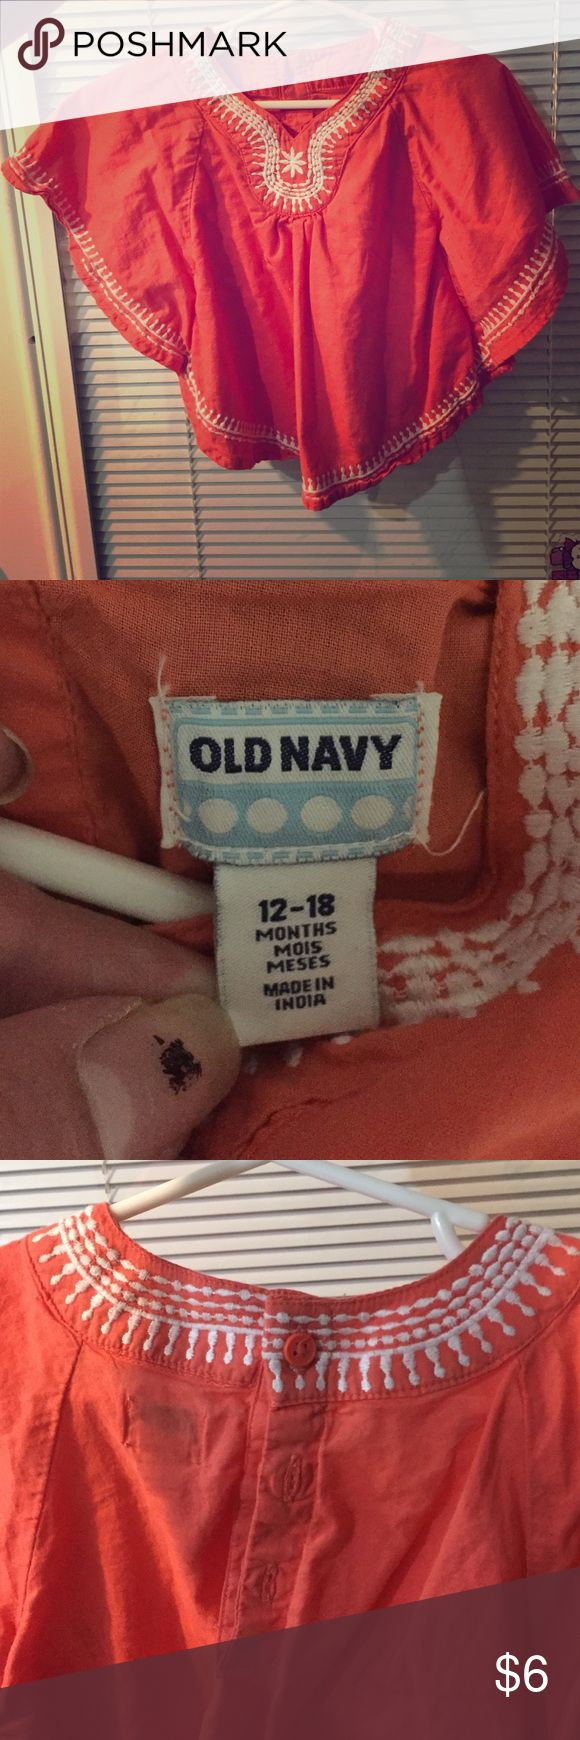 Old navy tunic thing I'm not sure what it's called Peachy orange in color, kind of boho look, embroidered in white around edges, never worn, great condition Old Navy Shirts & Tops Blouses